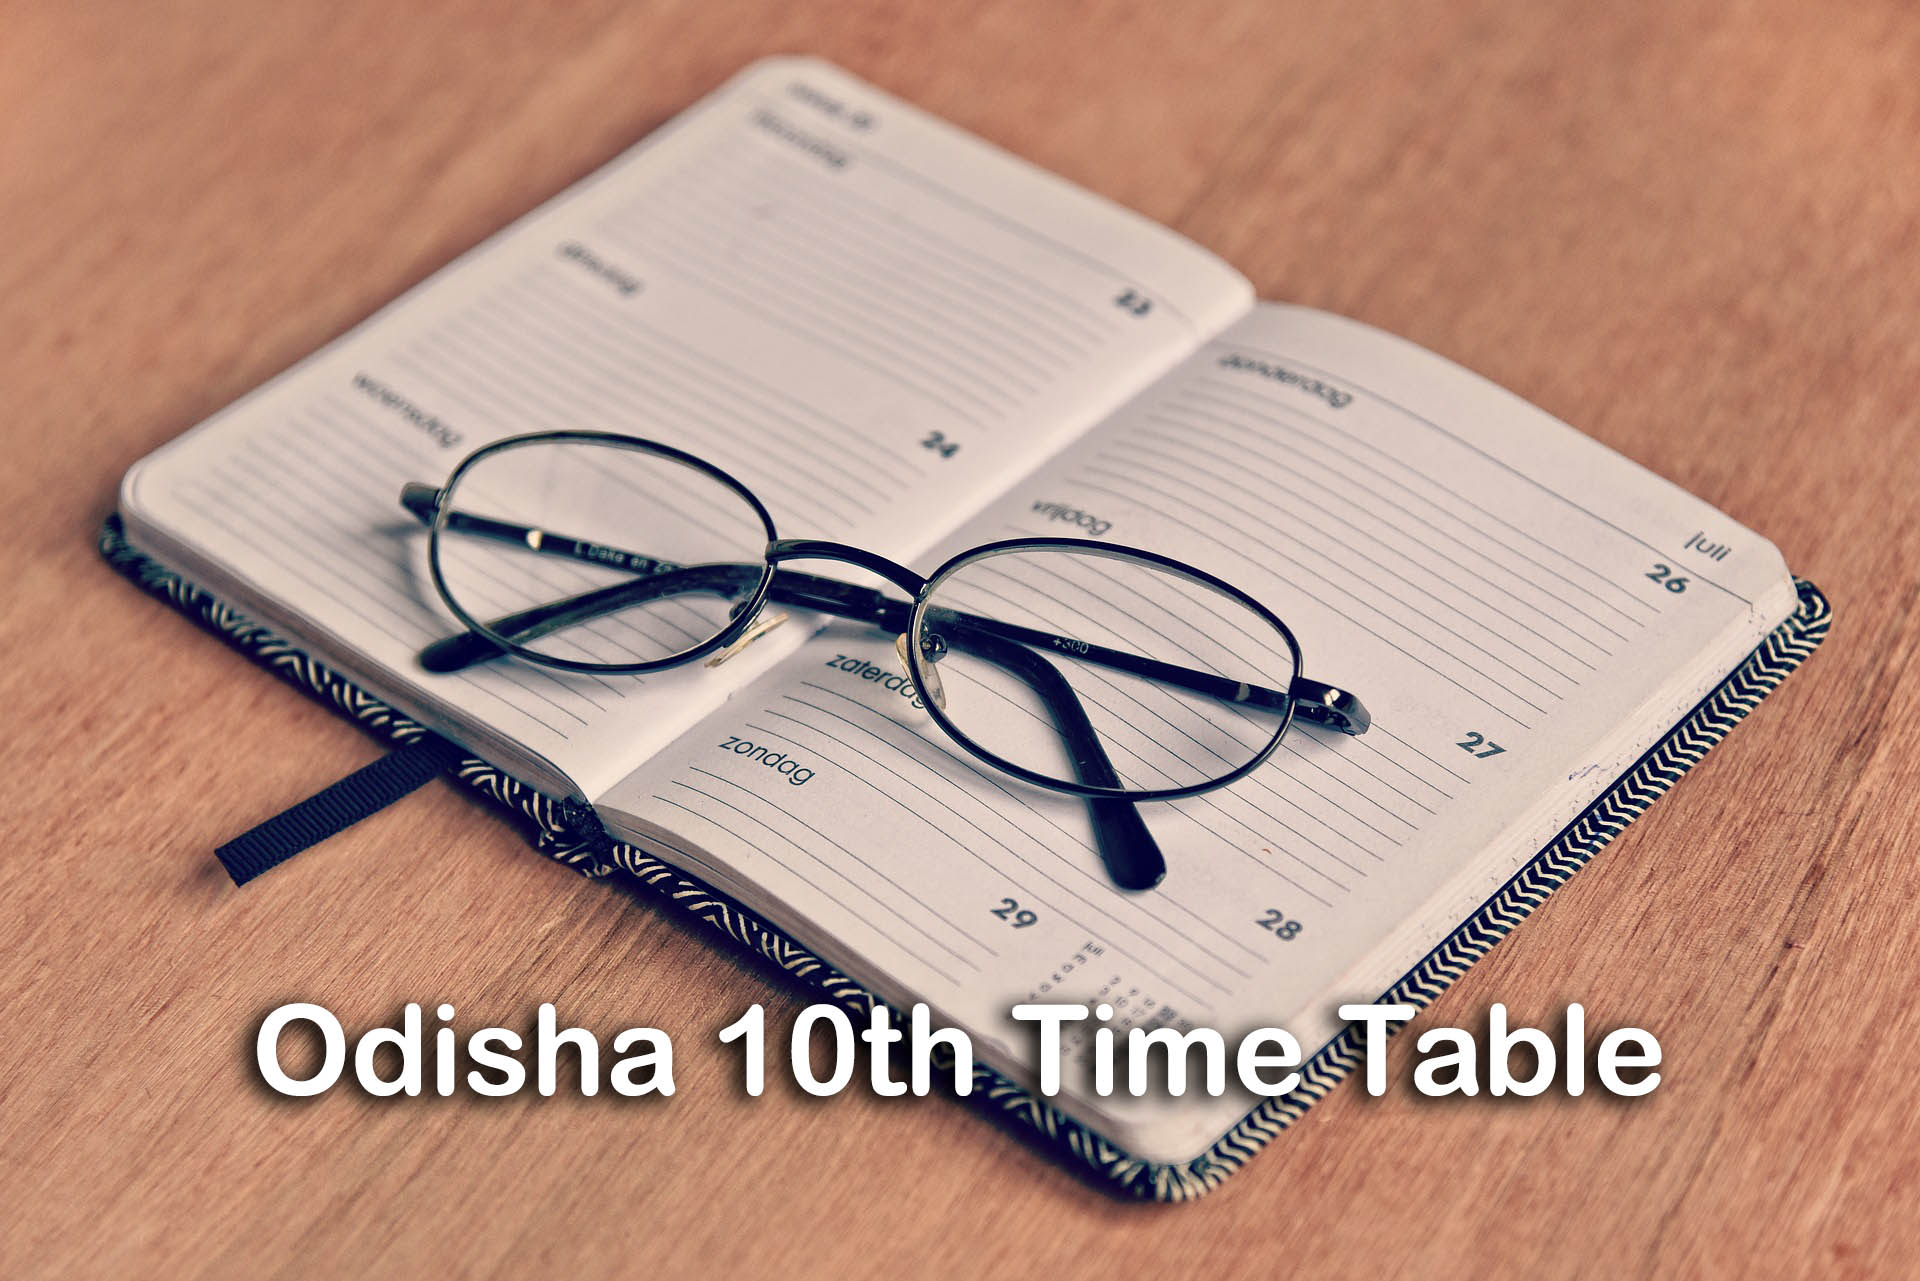 Odisha 10th Time Table